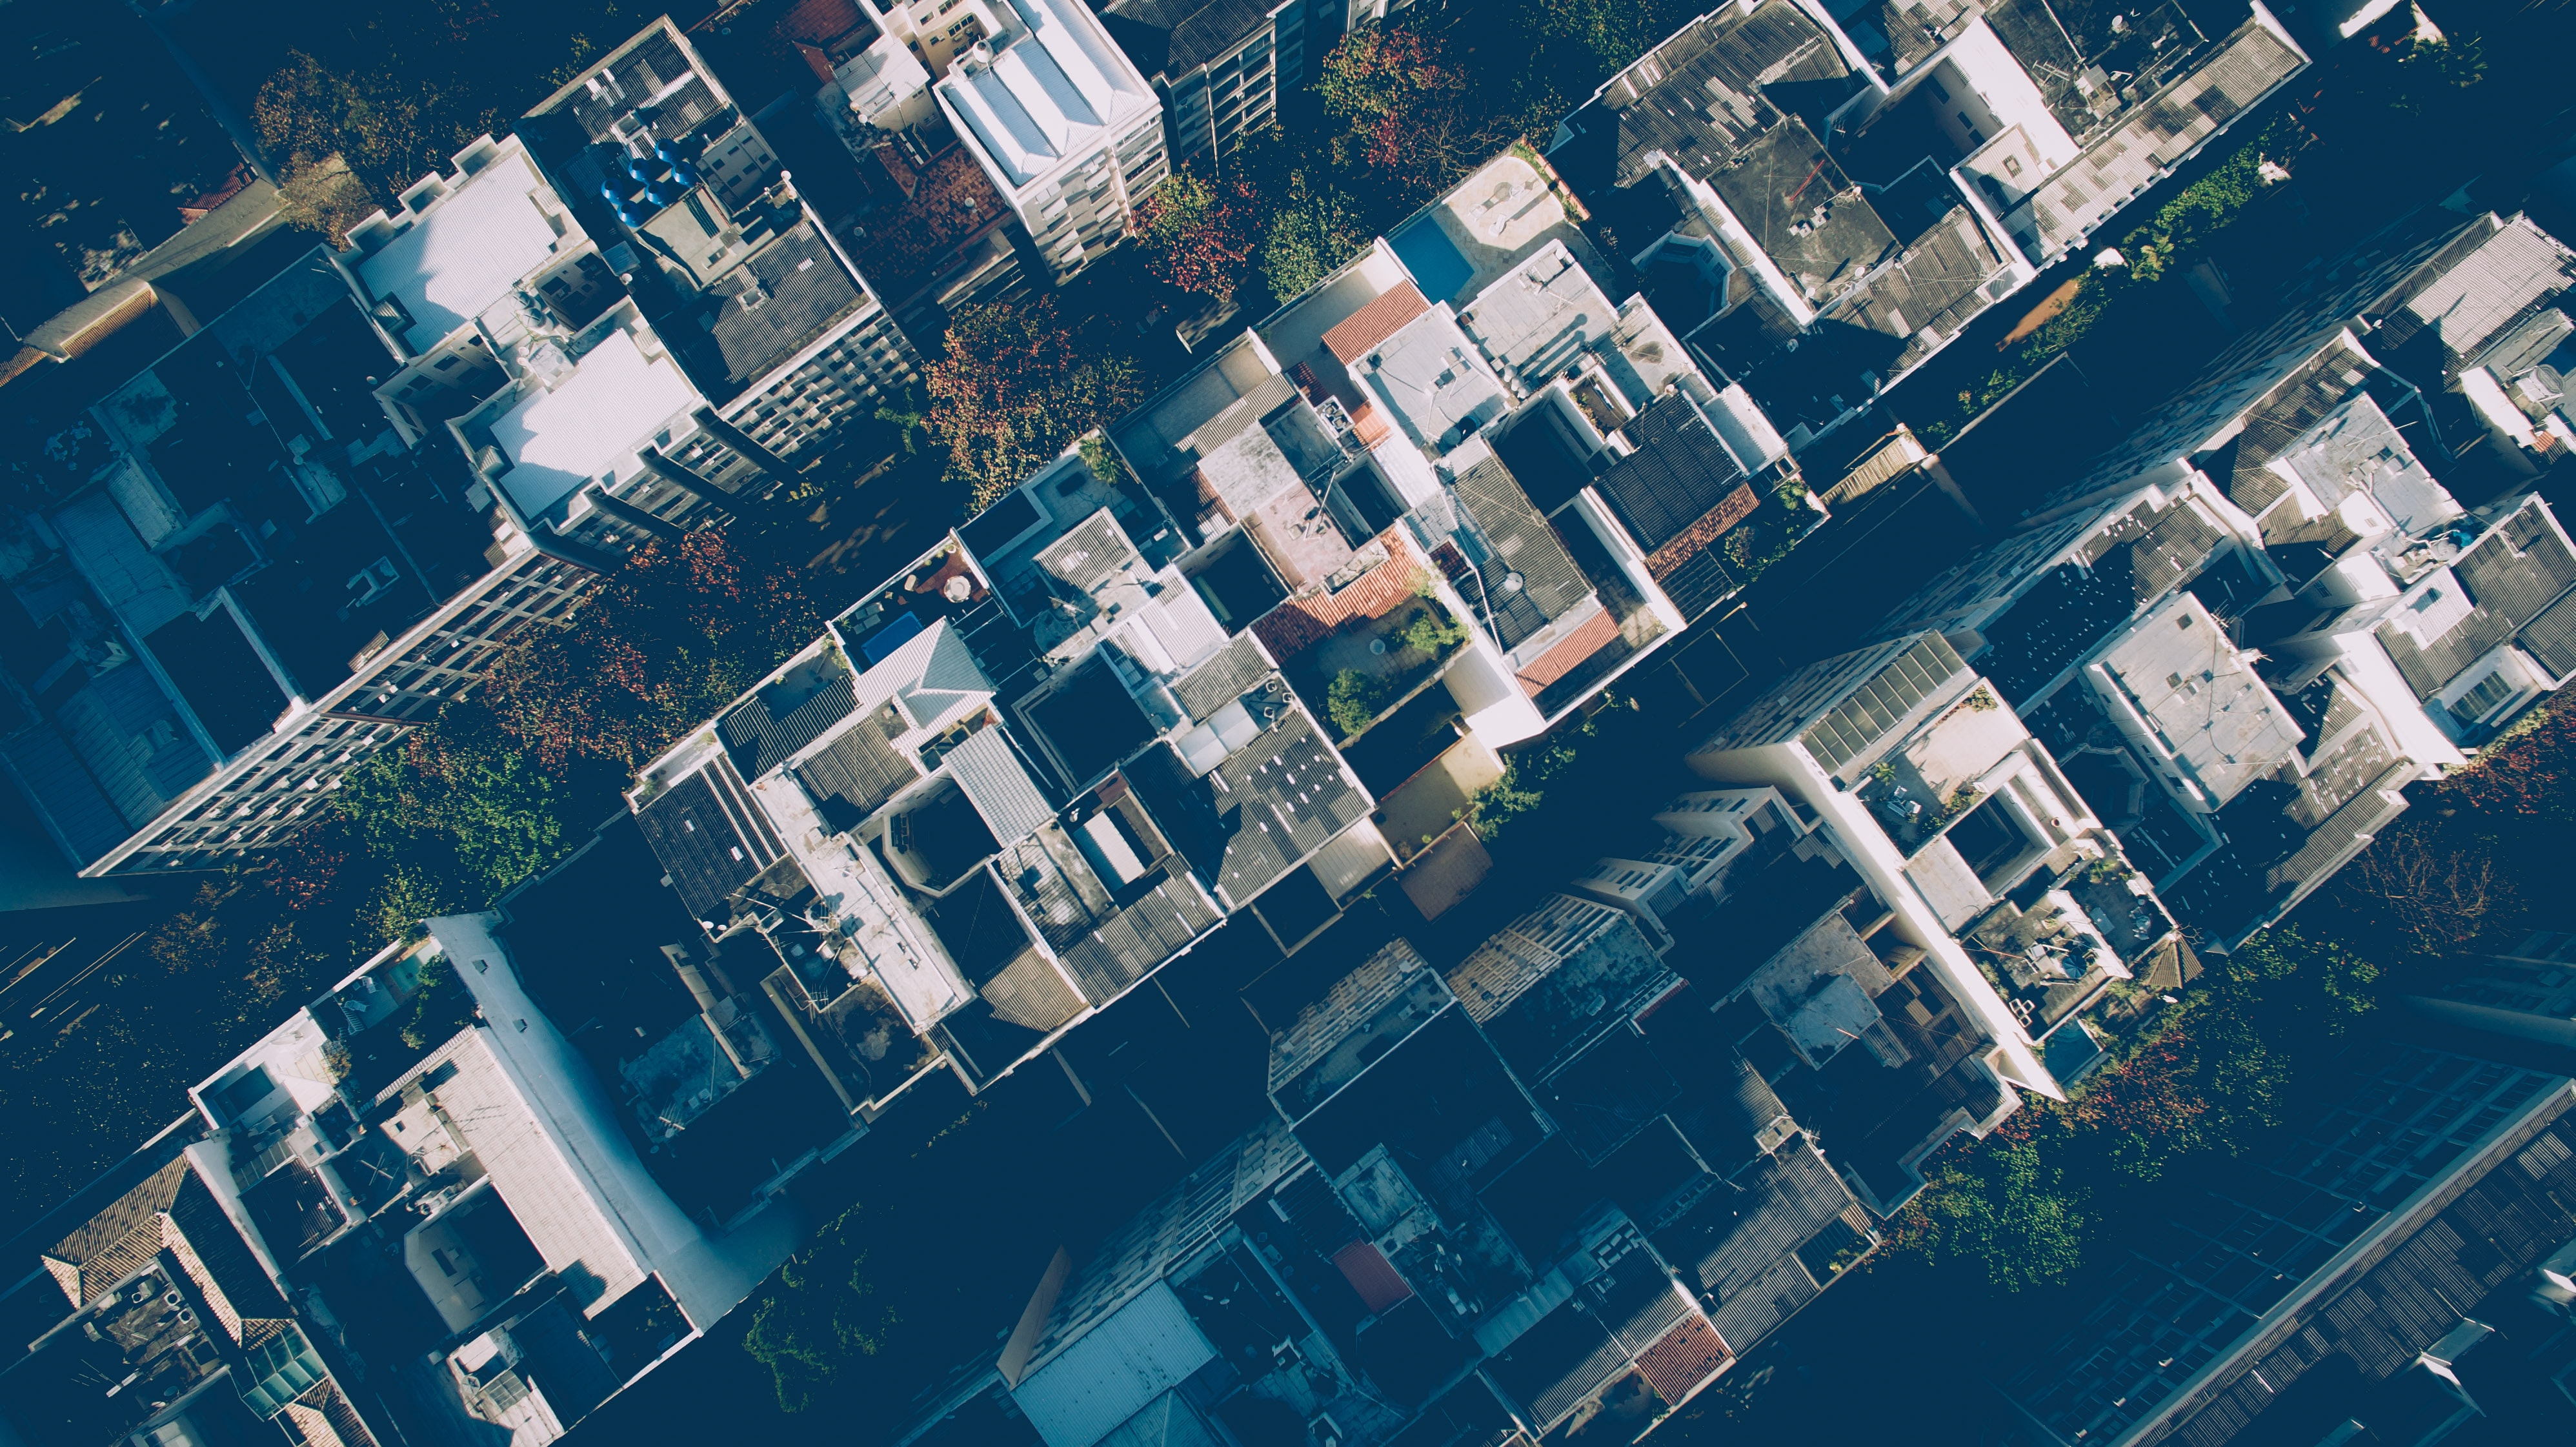 A drone shot of the roofs of residential buildings in Ipanema